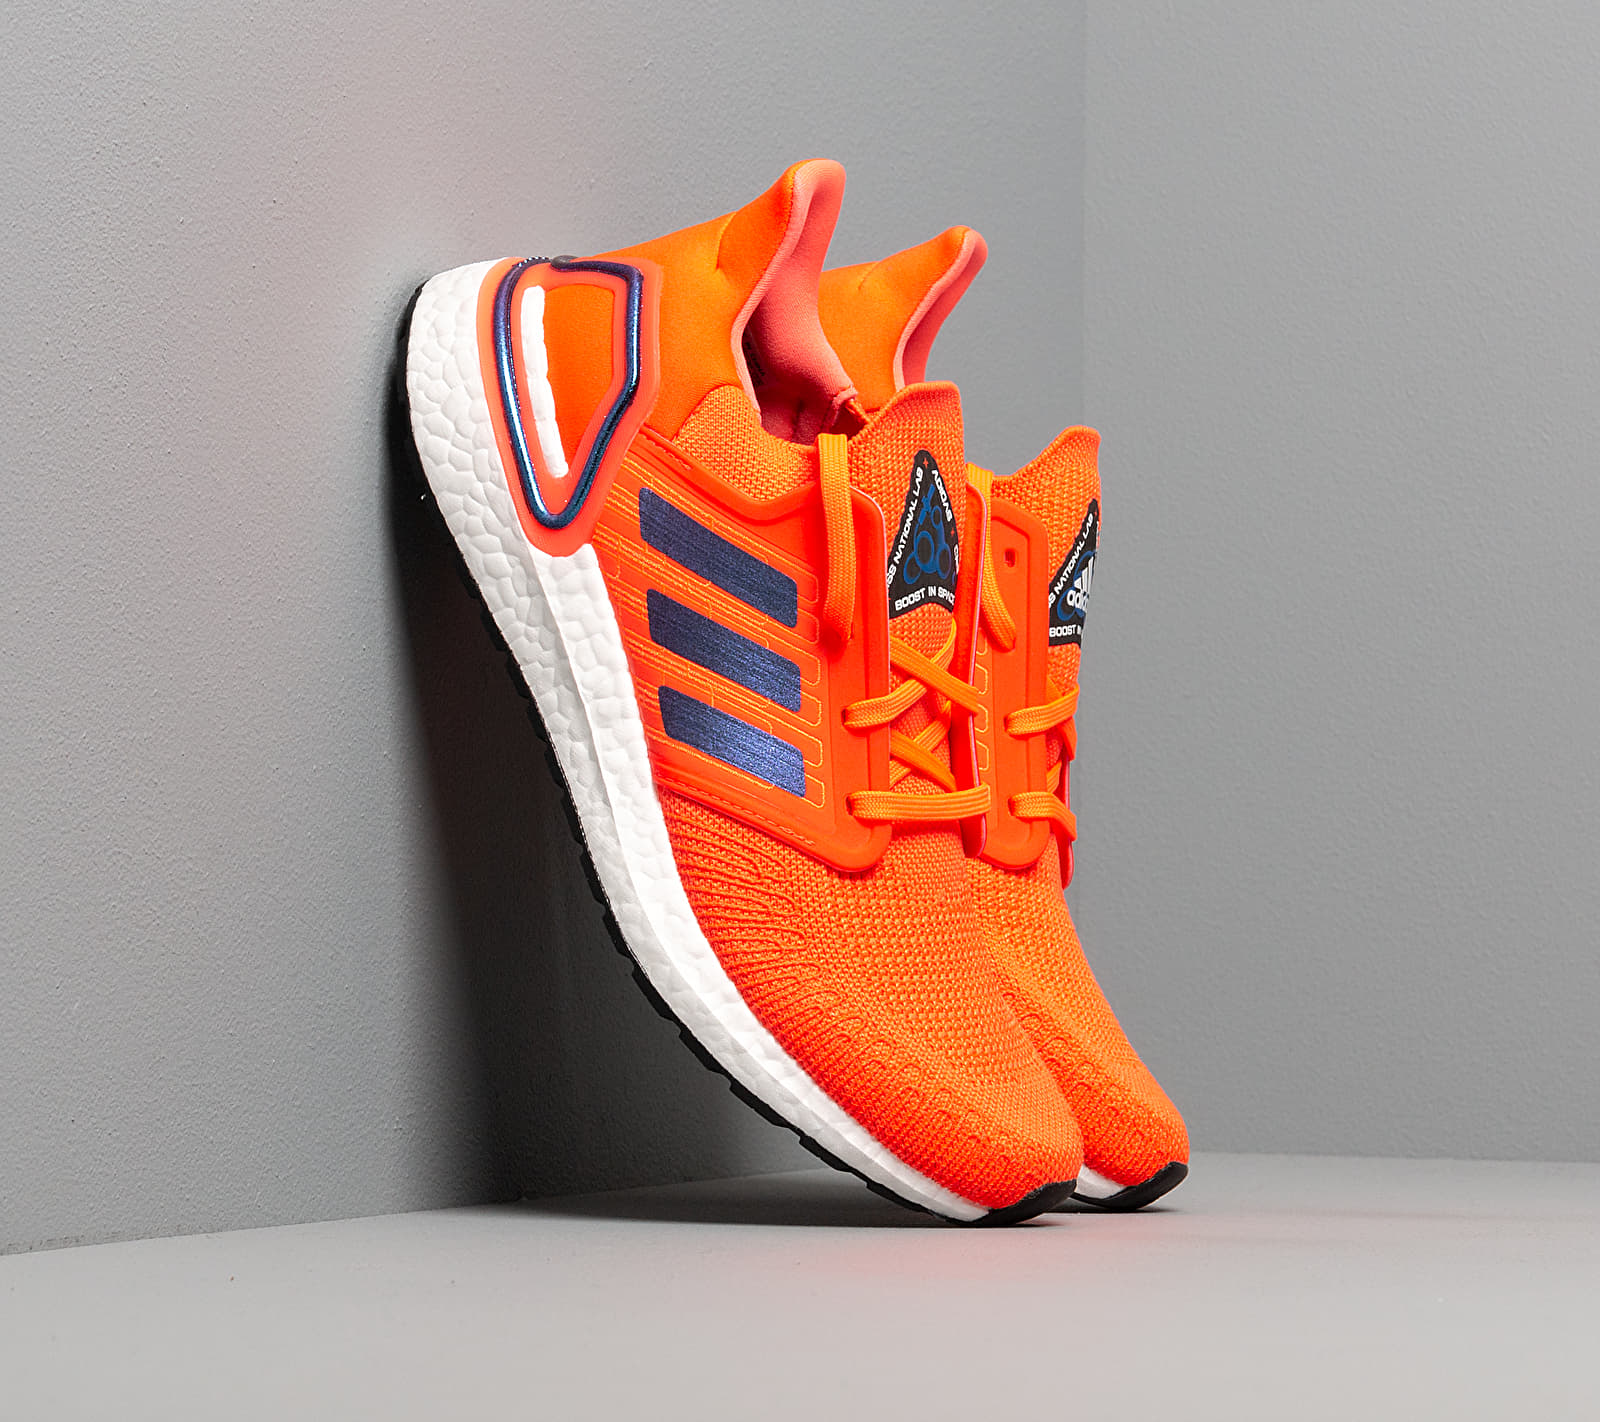 adidas UltraBOOST 20 Solid Red/ Blue Vime/ Ftw White FV8449